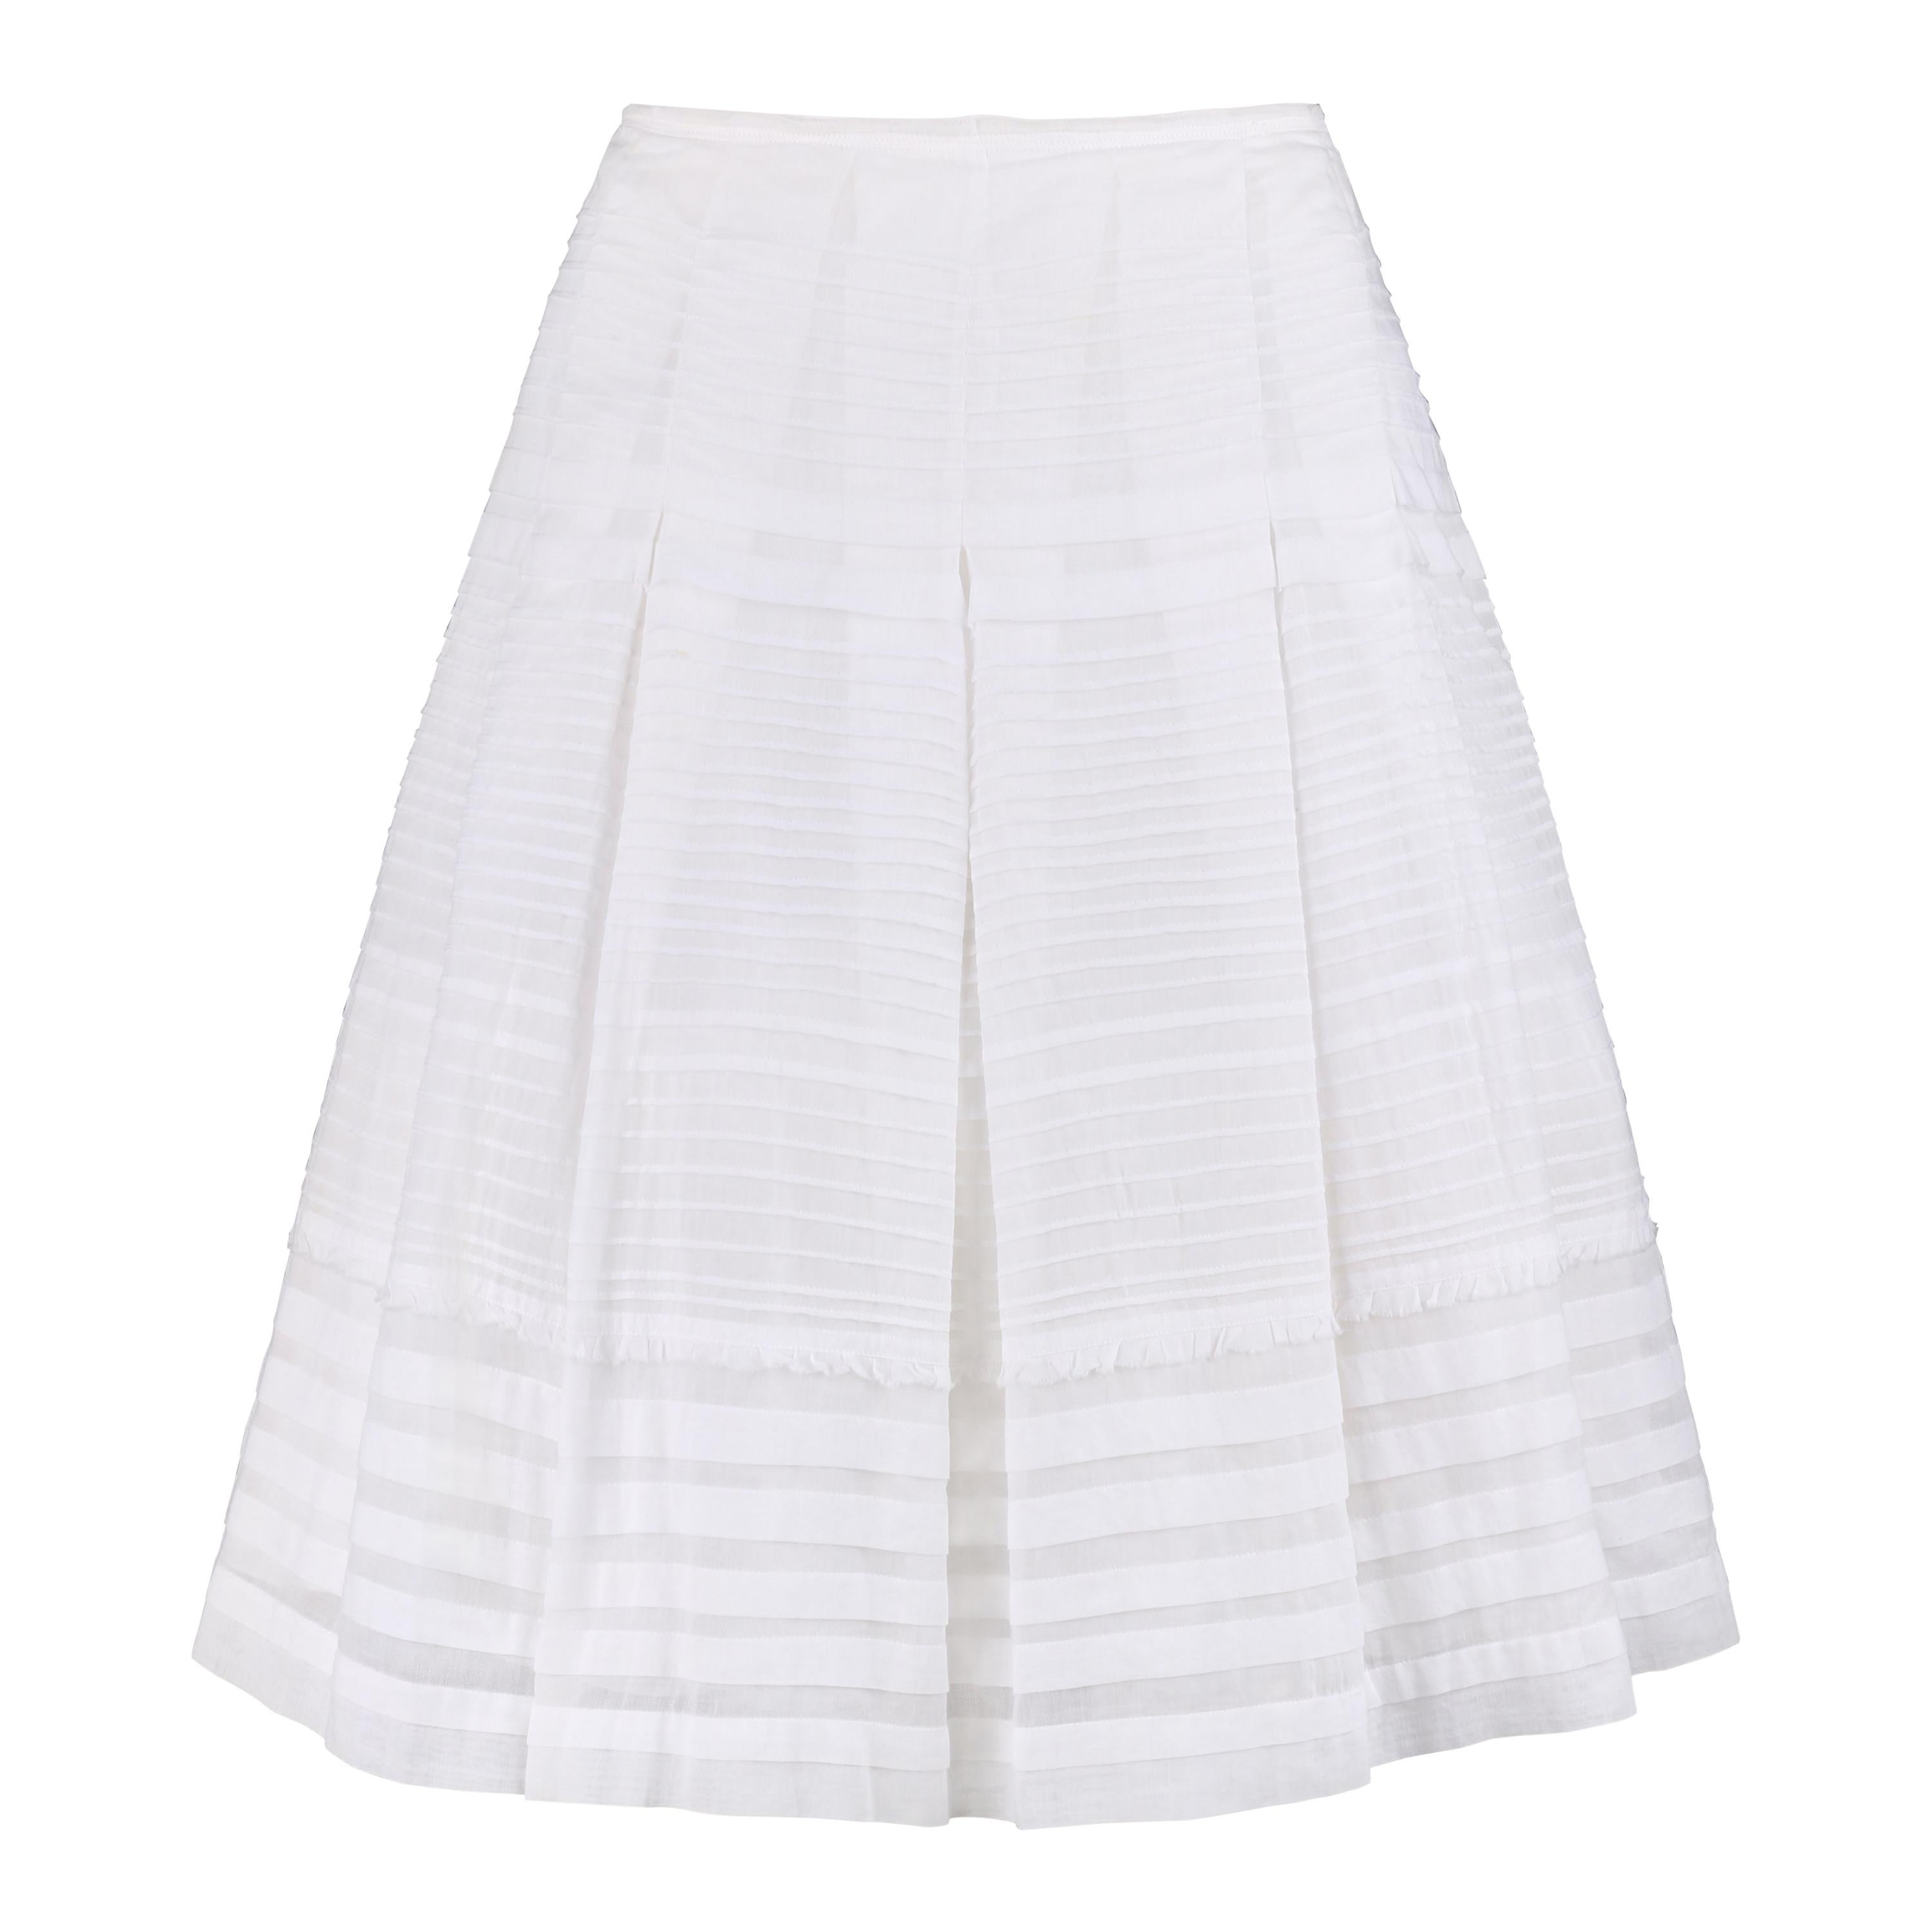 PRADA Classic White Pleated Cotton Tulle Layered Skirt Size 44